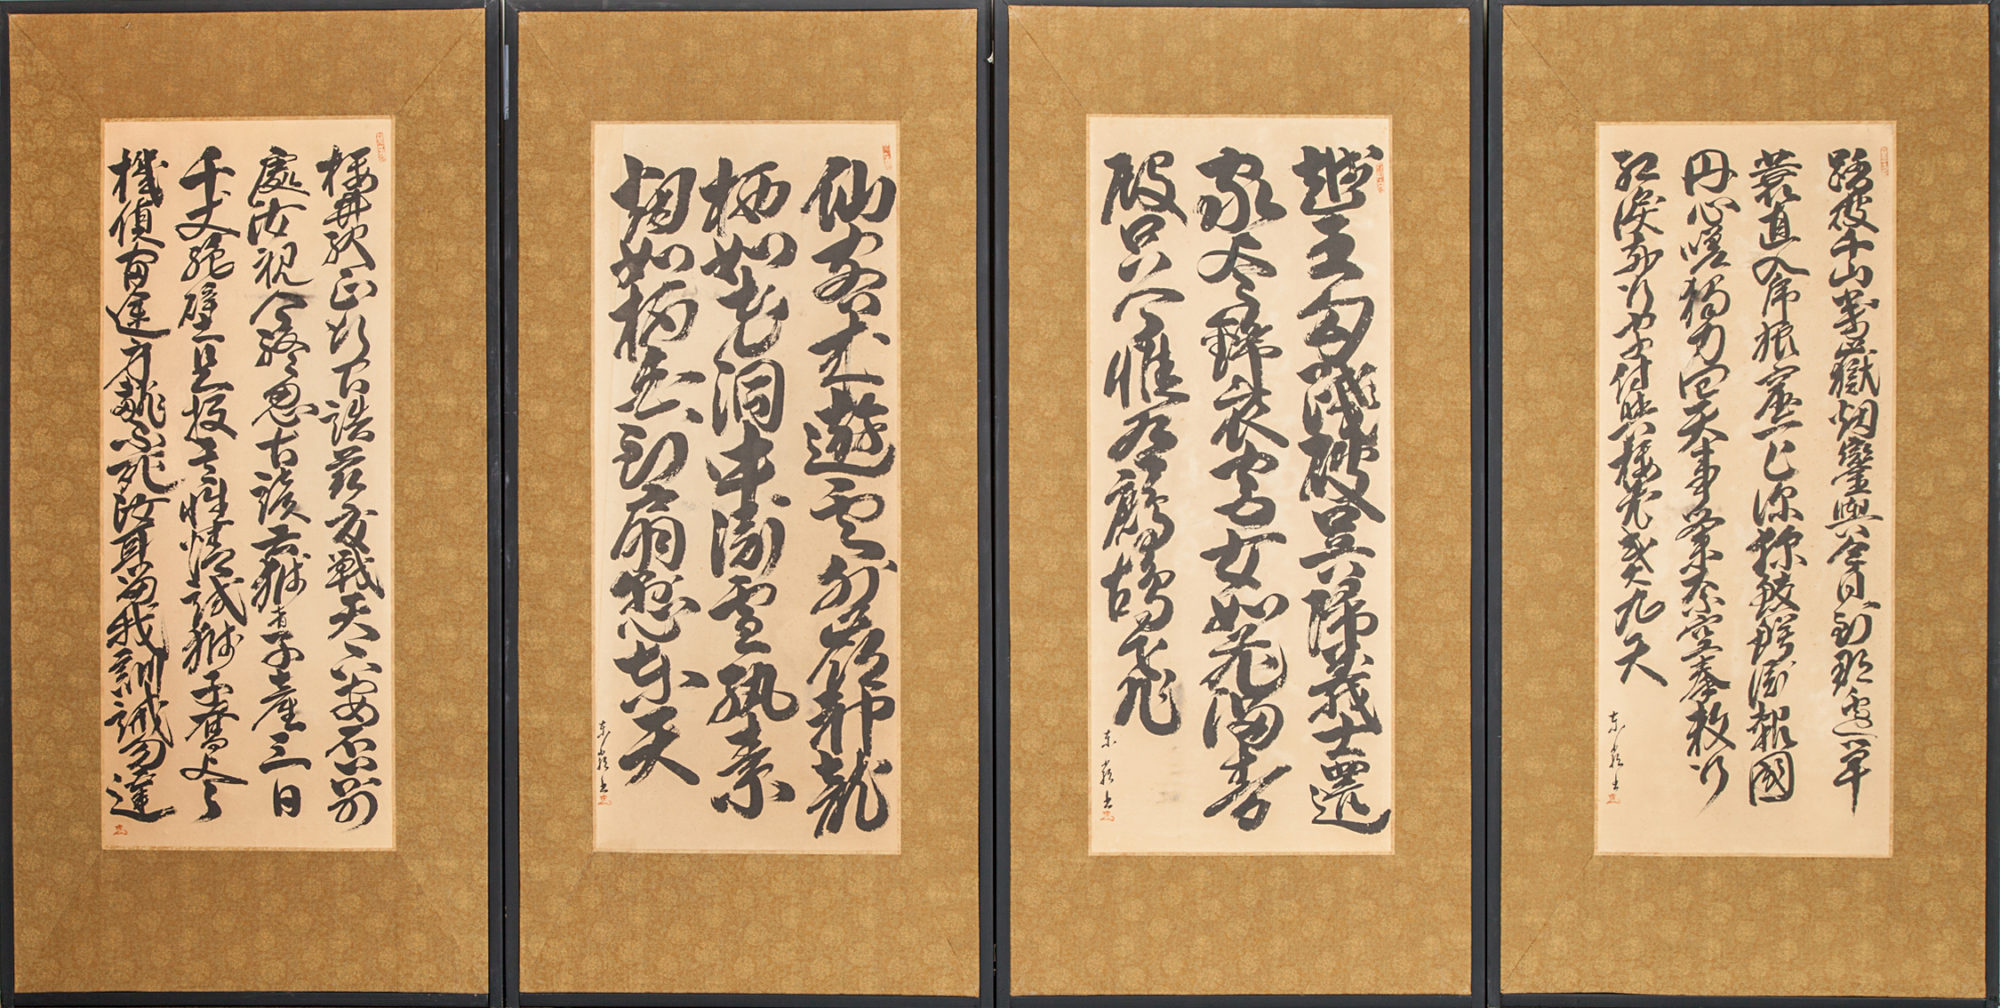 Japanese Four Panel Screen: Seasonal Poems